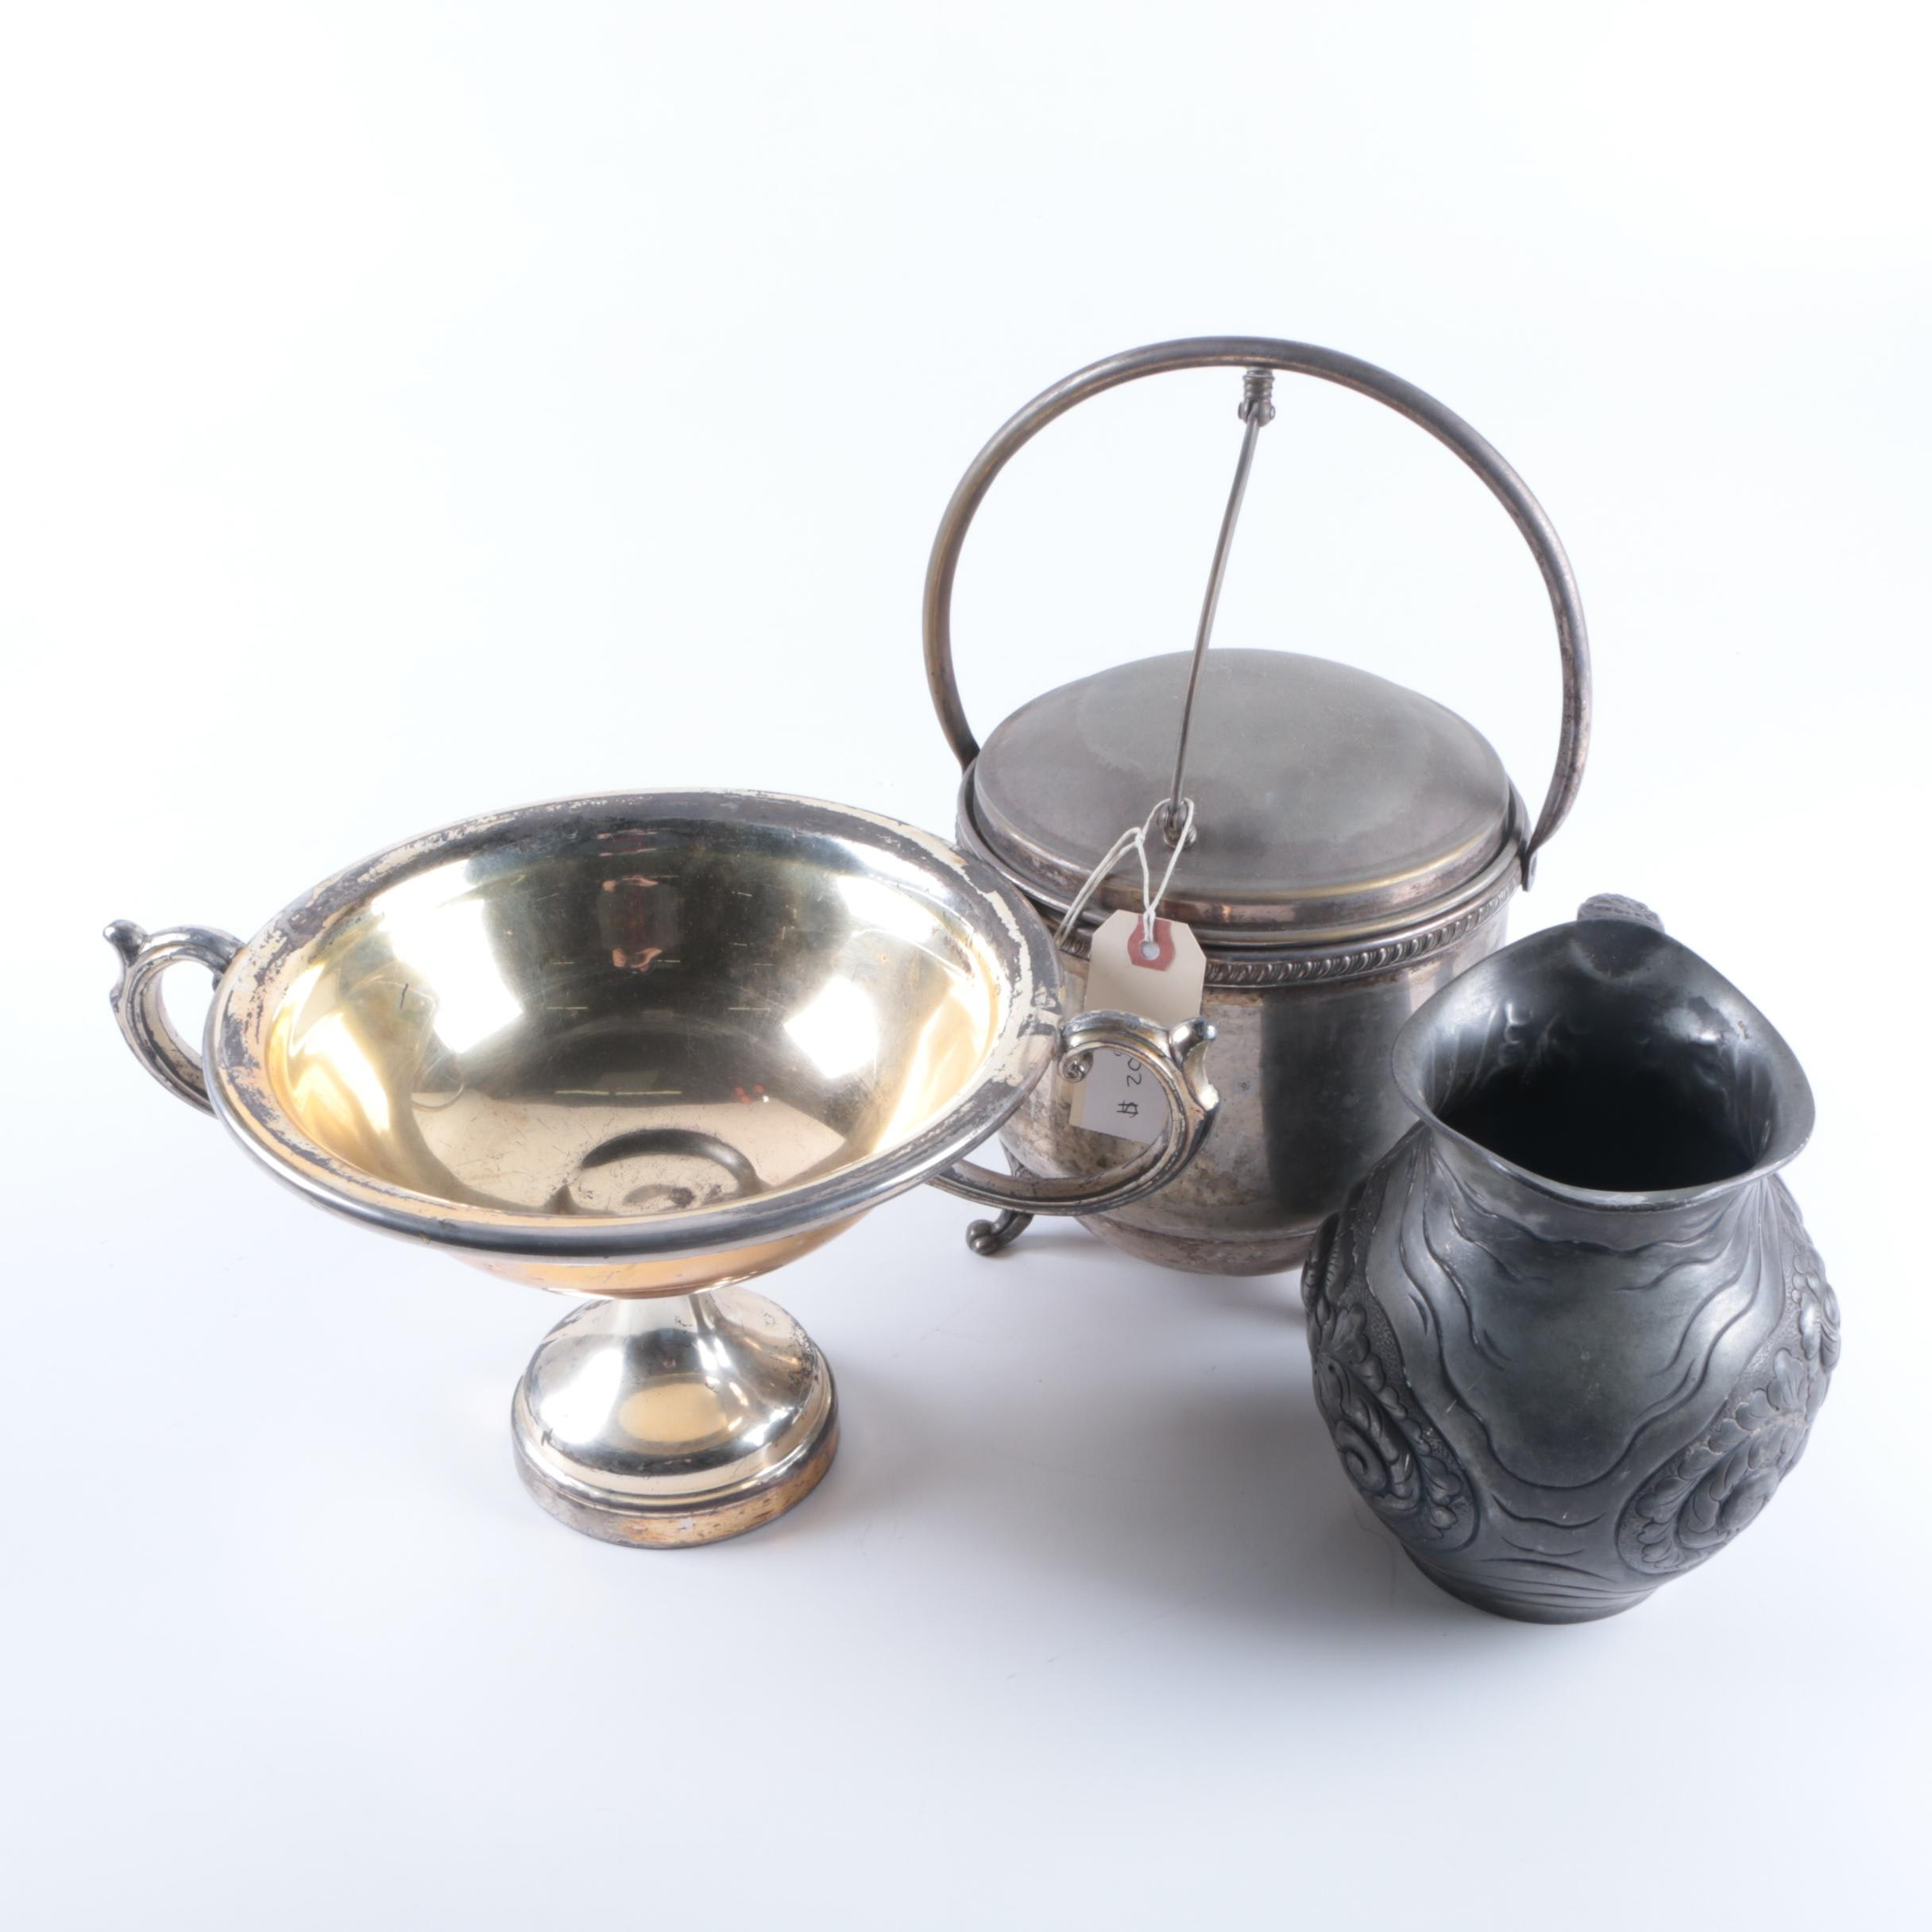 Silver Plate Ice Bucket and Other Silver Plate and Silver Tone Tableware